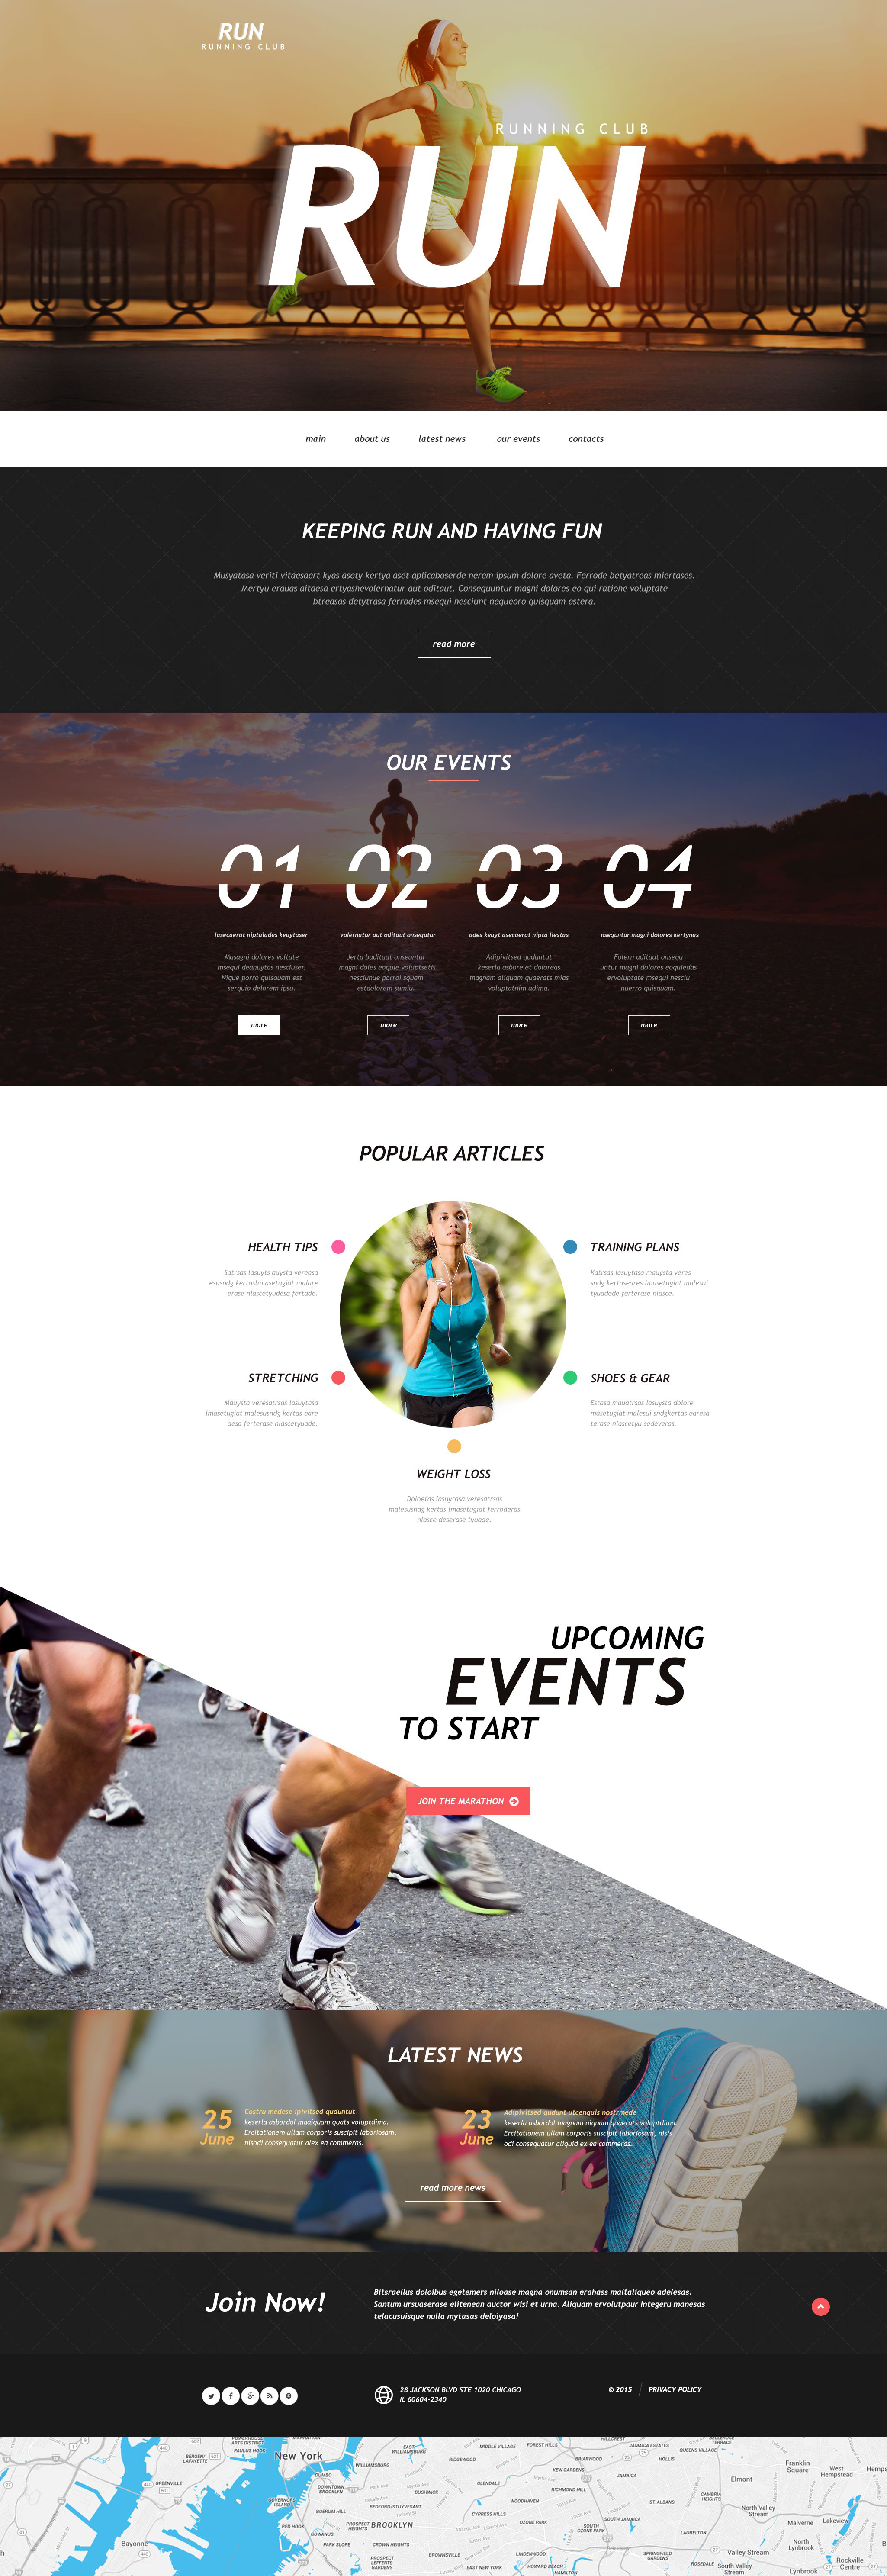 Running Muse Template